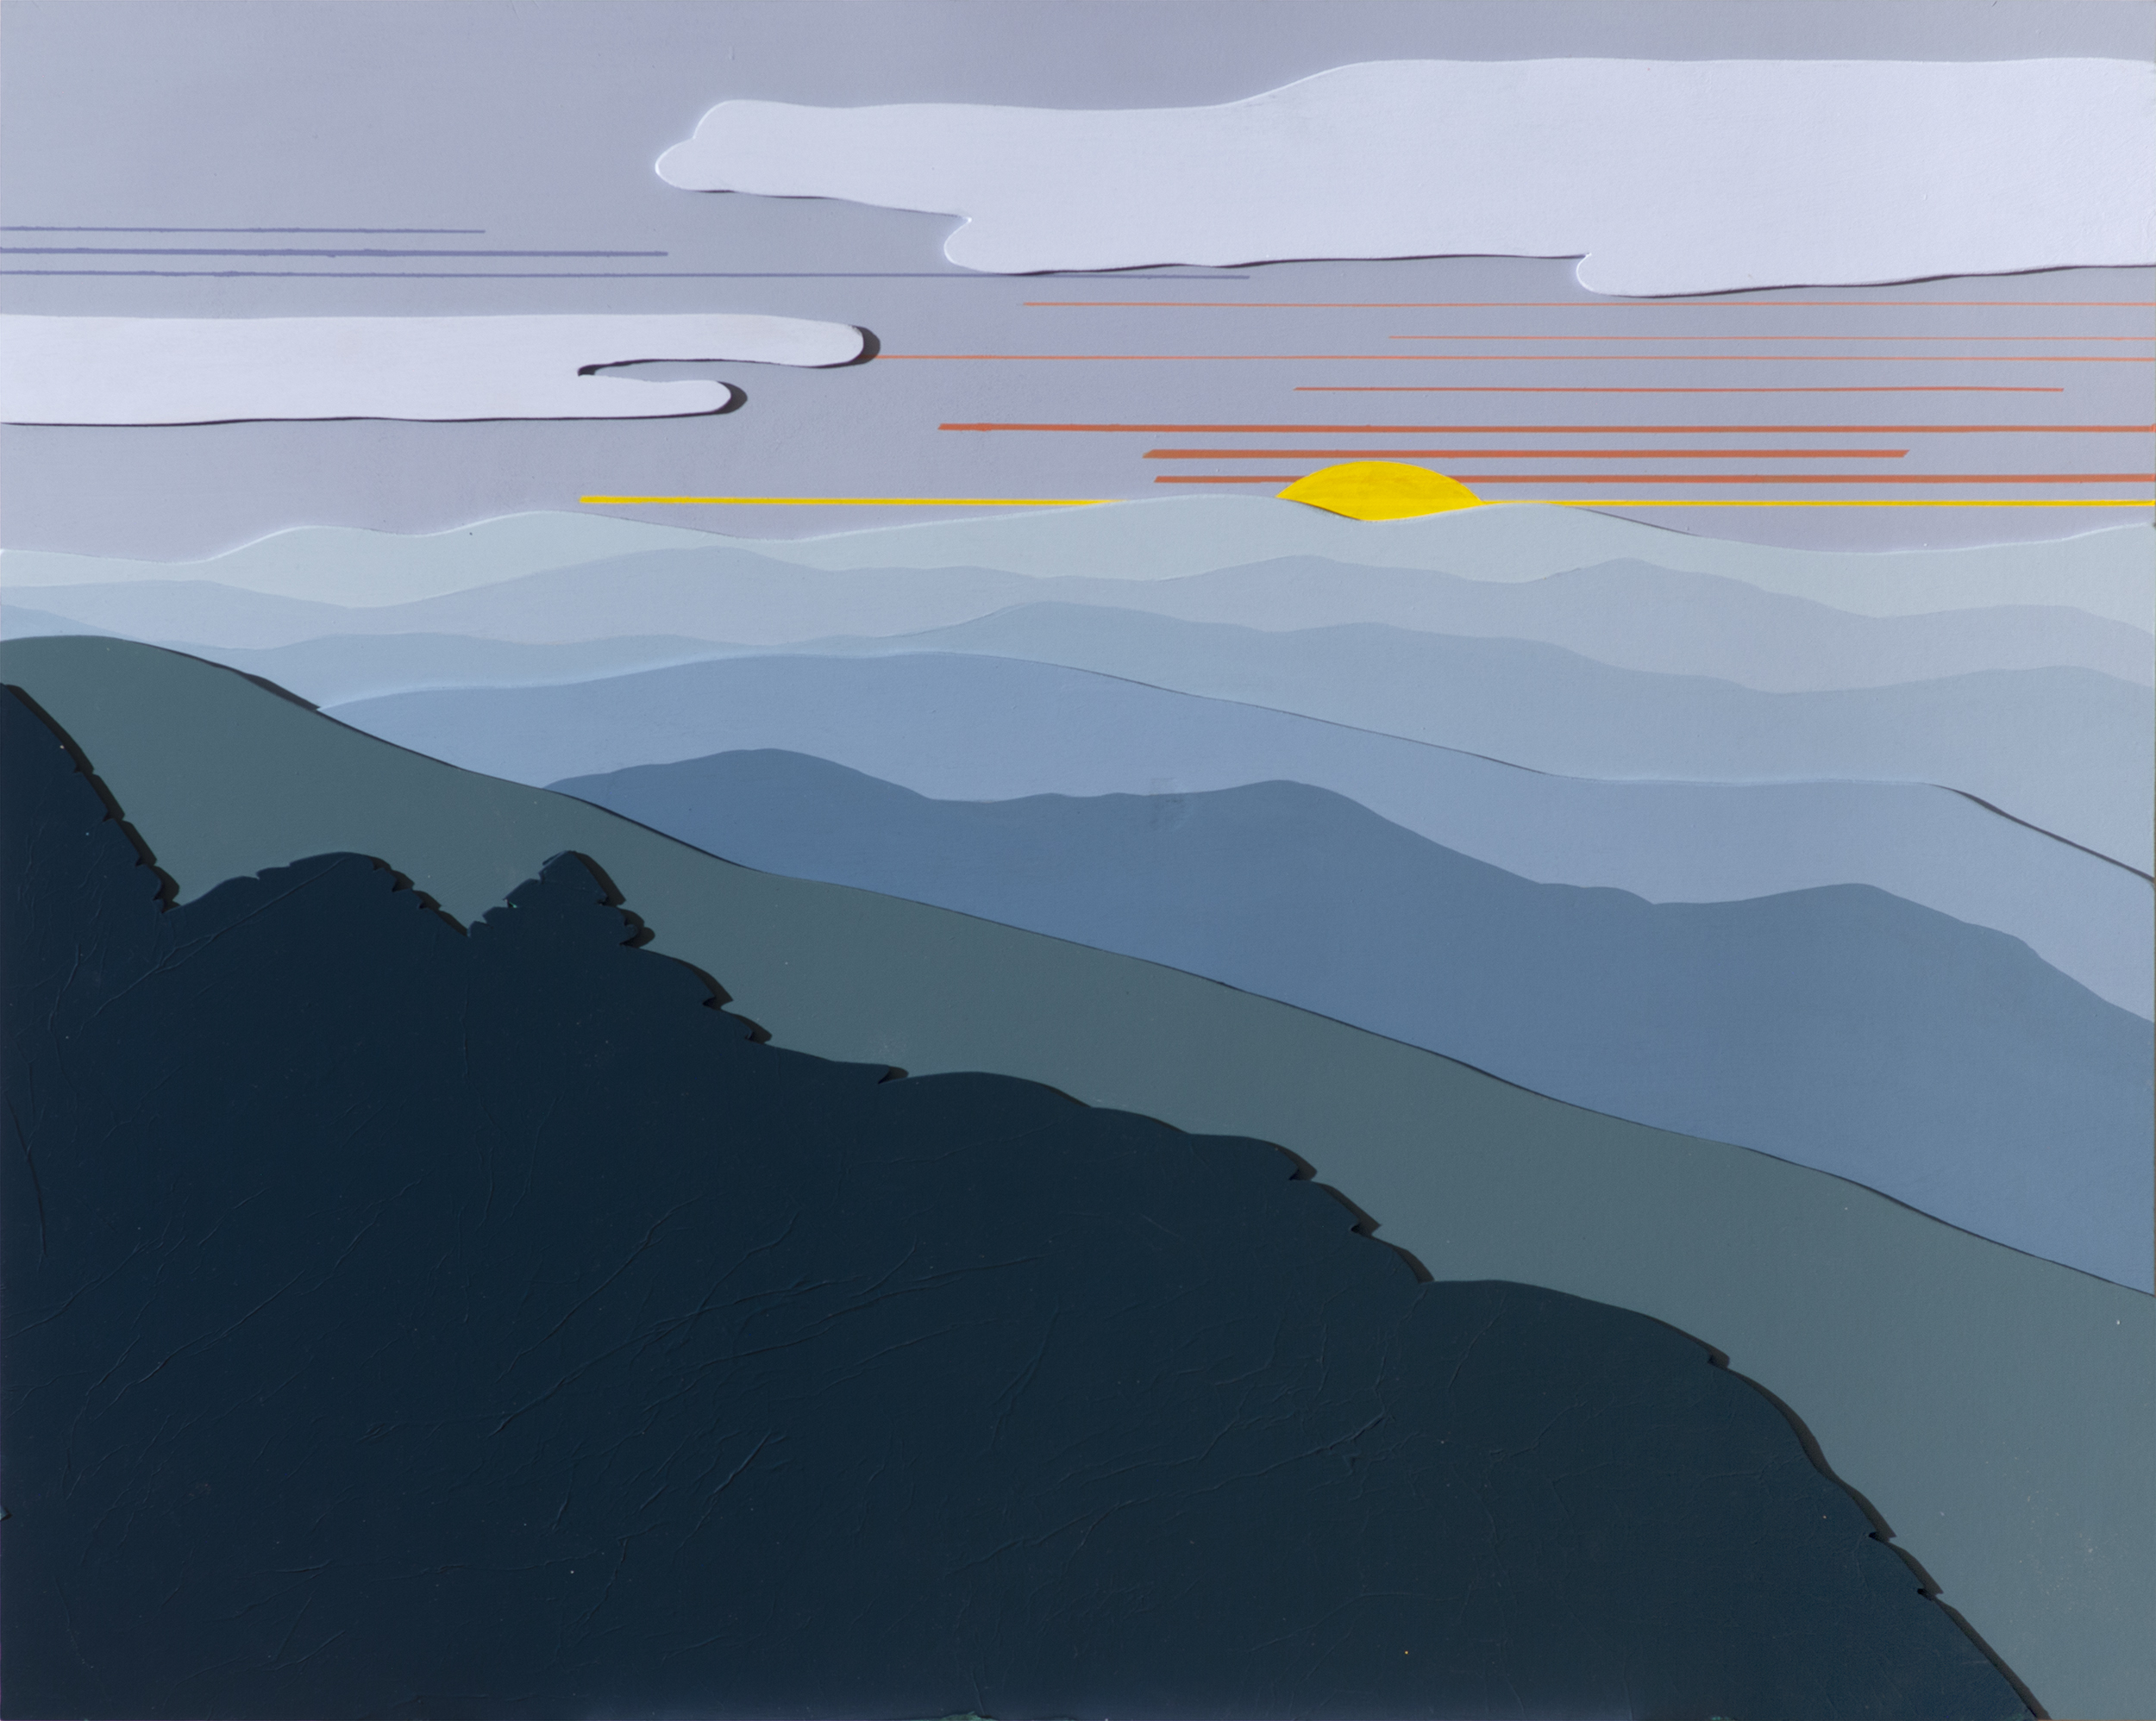 "BLUE RIDGE MORNING 3D 142"", Acrylic on Layered Wood, 30 x 24 inches, $800."